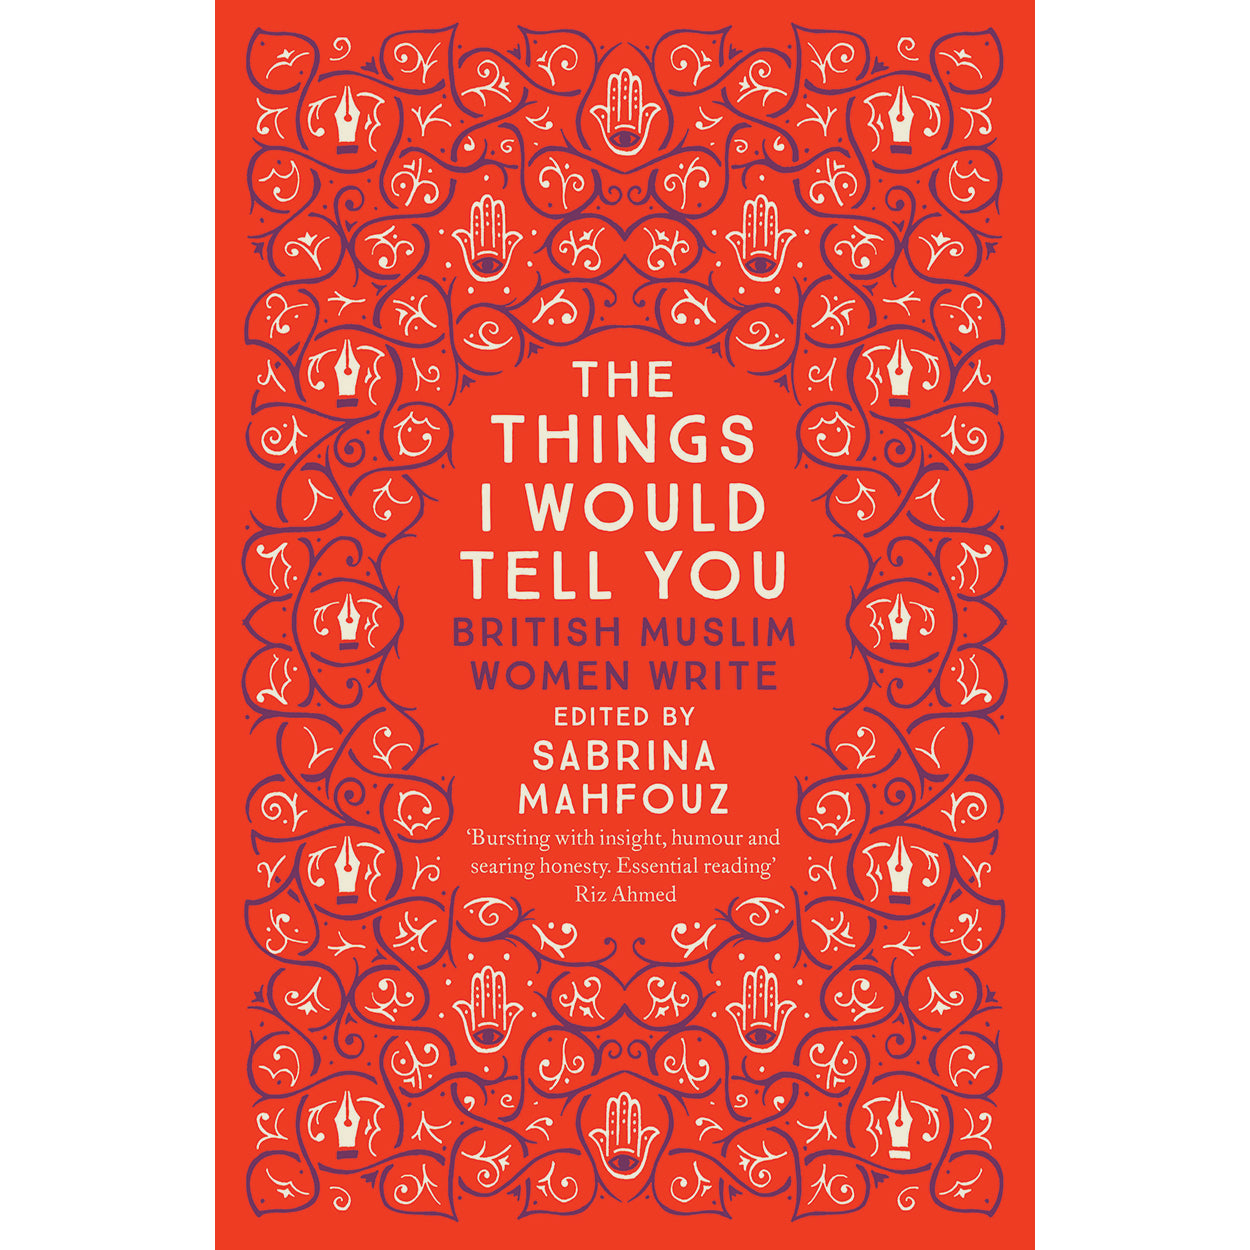 Cover ofThe Things I Would Tell You: British Muslim Women Write